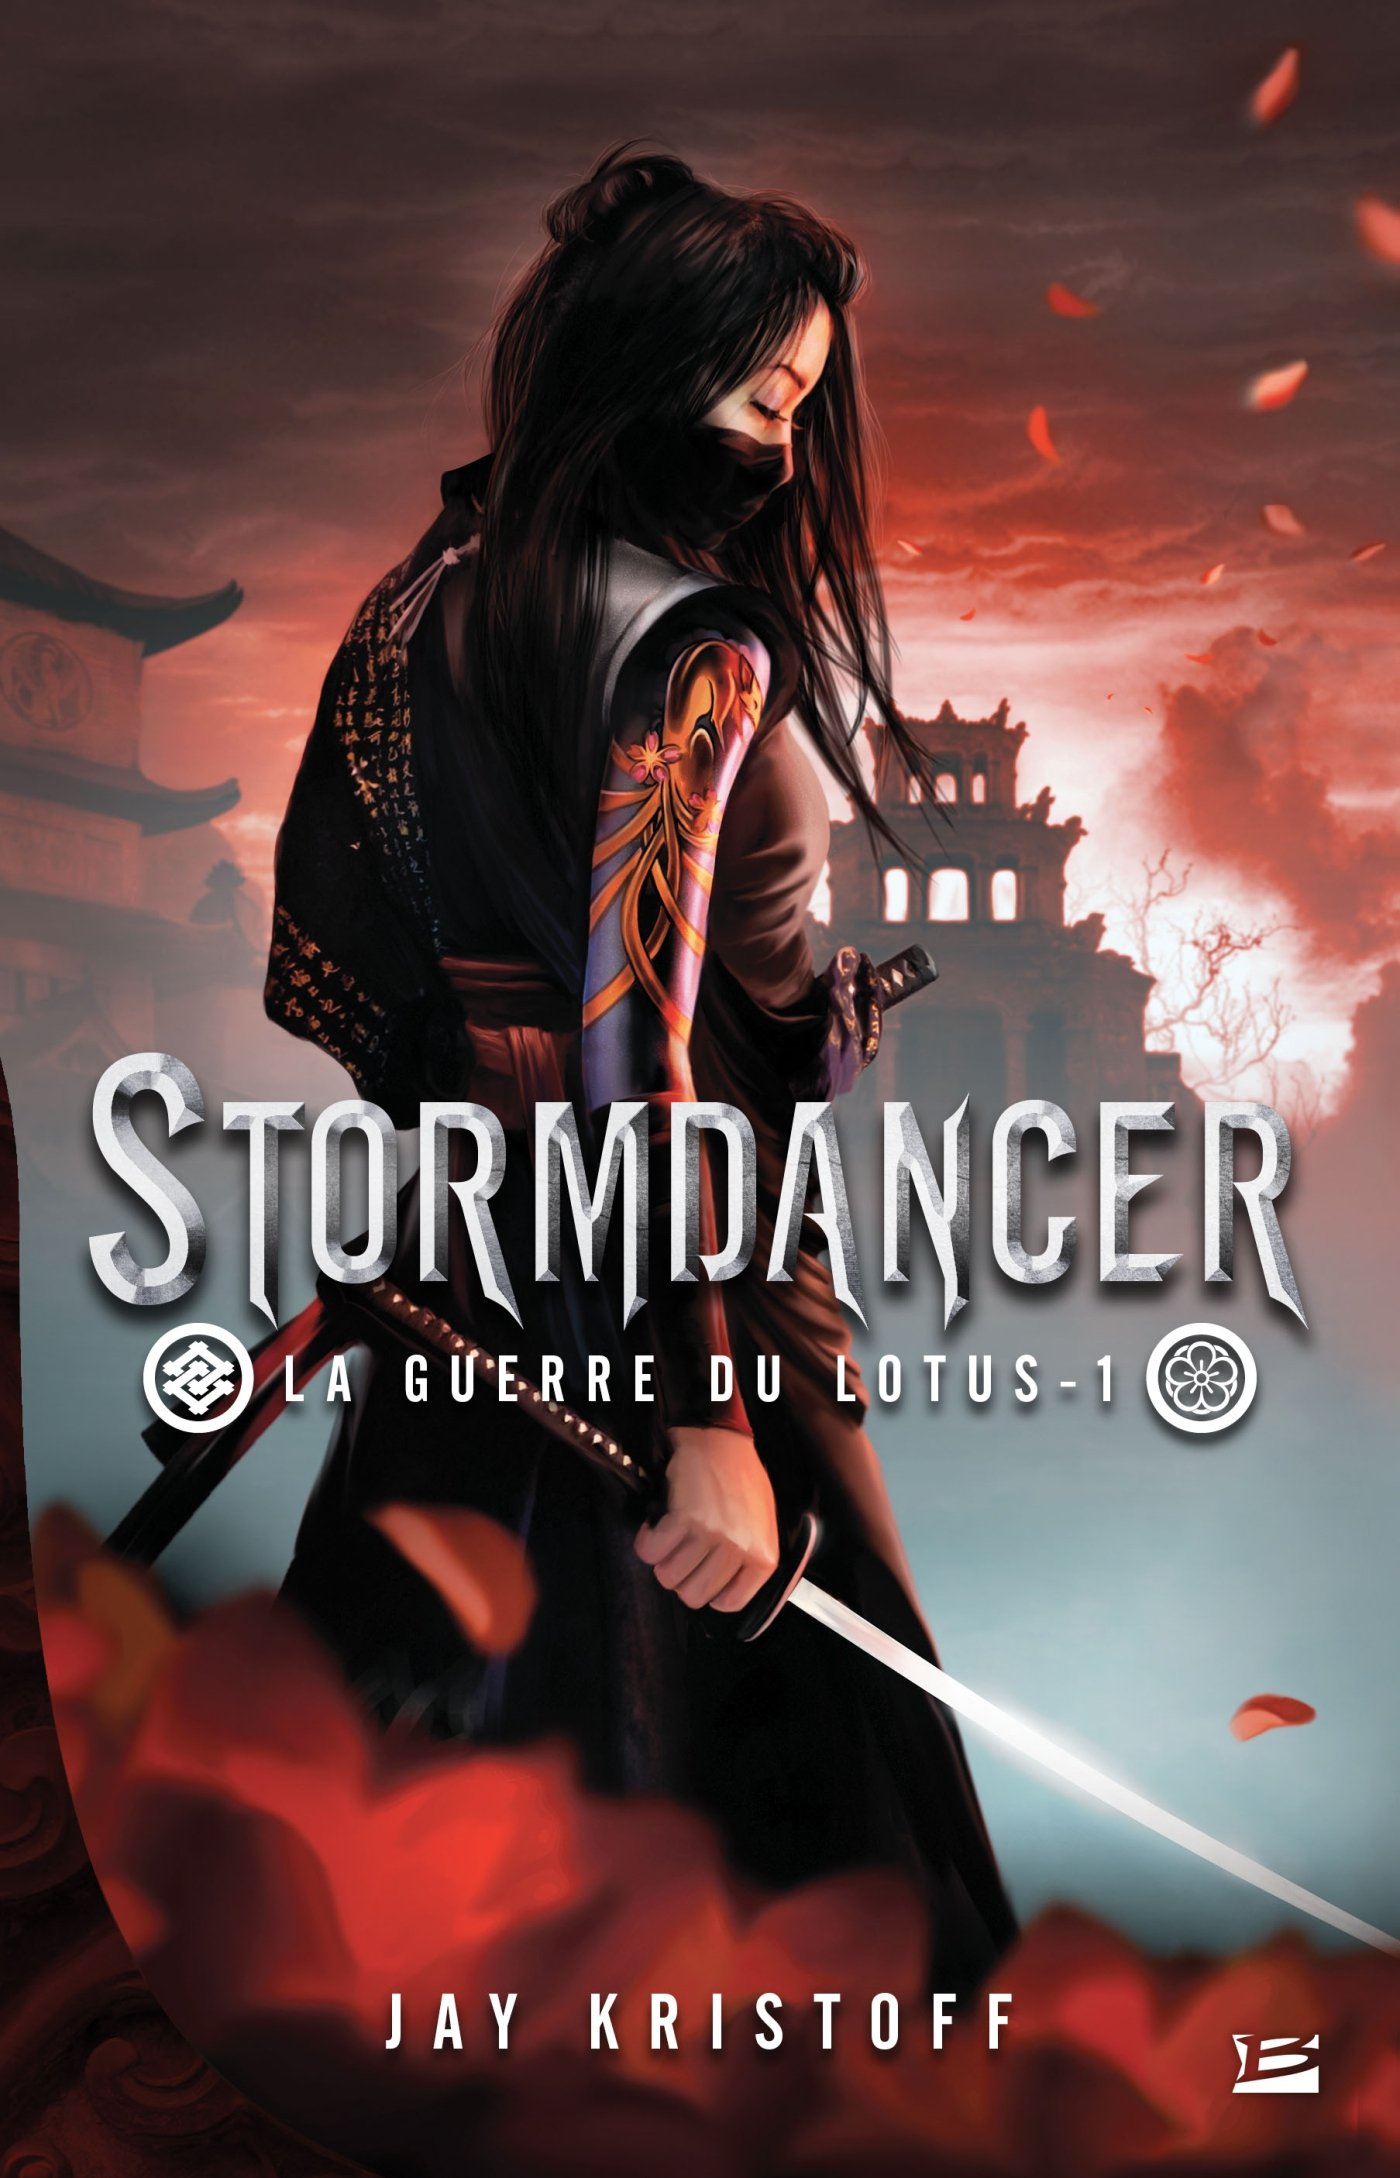 Stormdancer La guerre du lotus